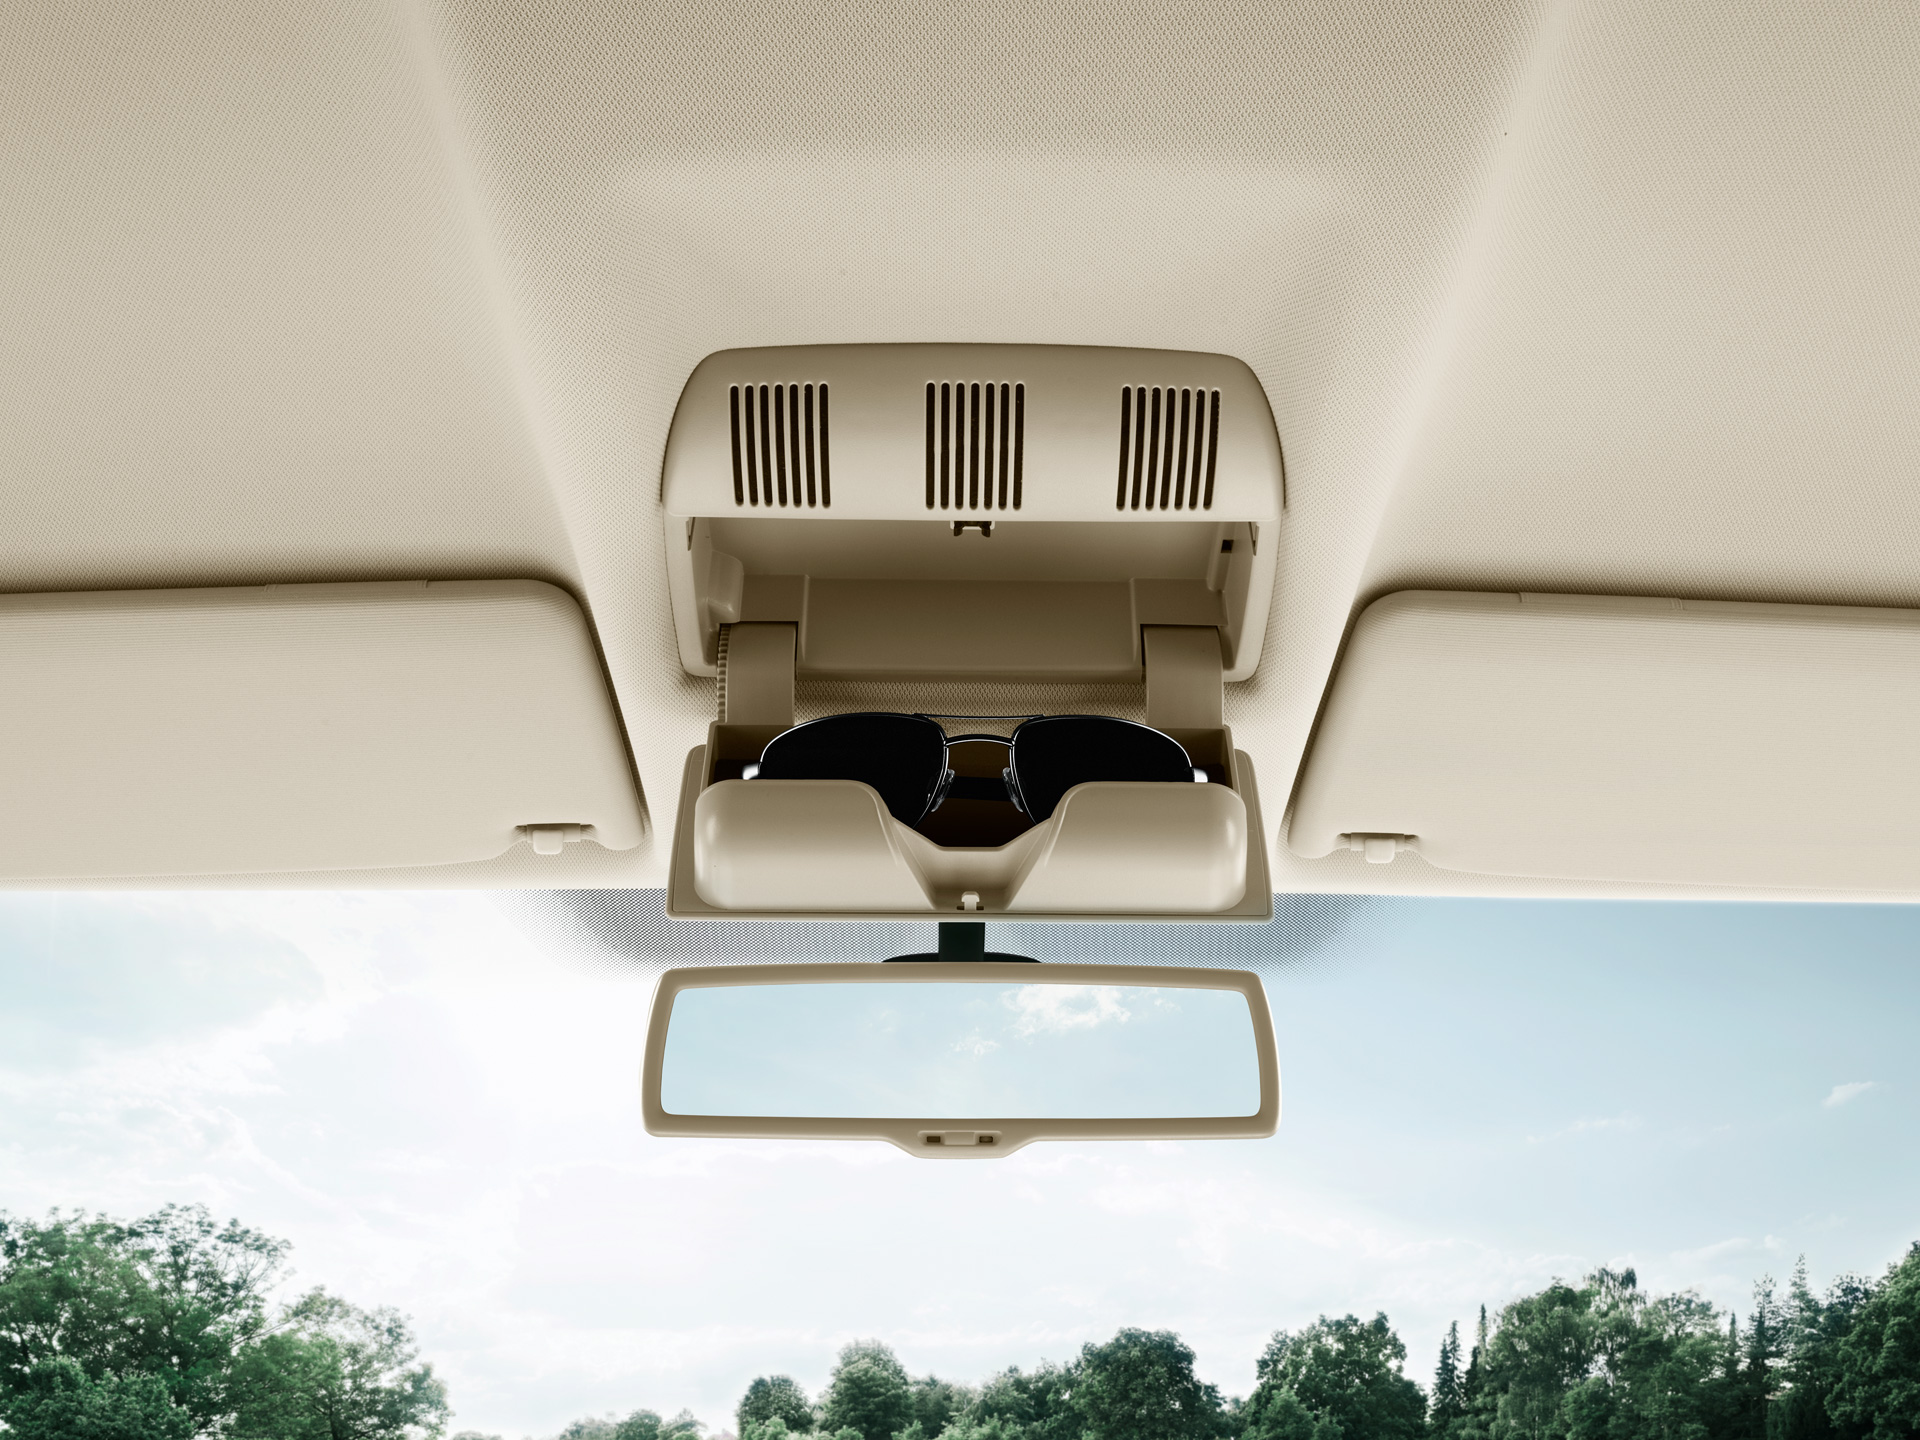 ŠKODA Octavia Sunglasses Compartment